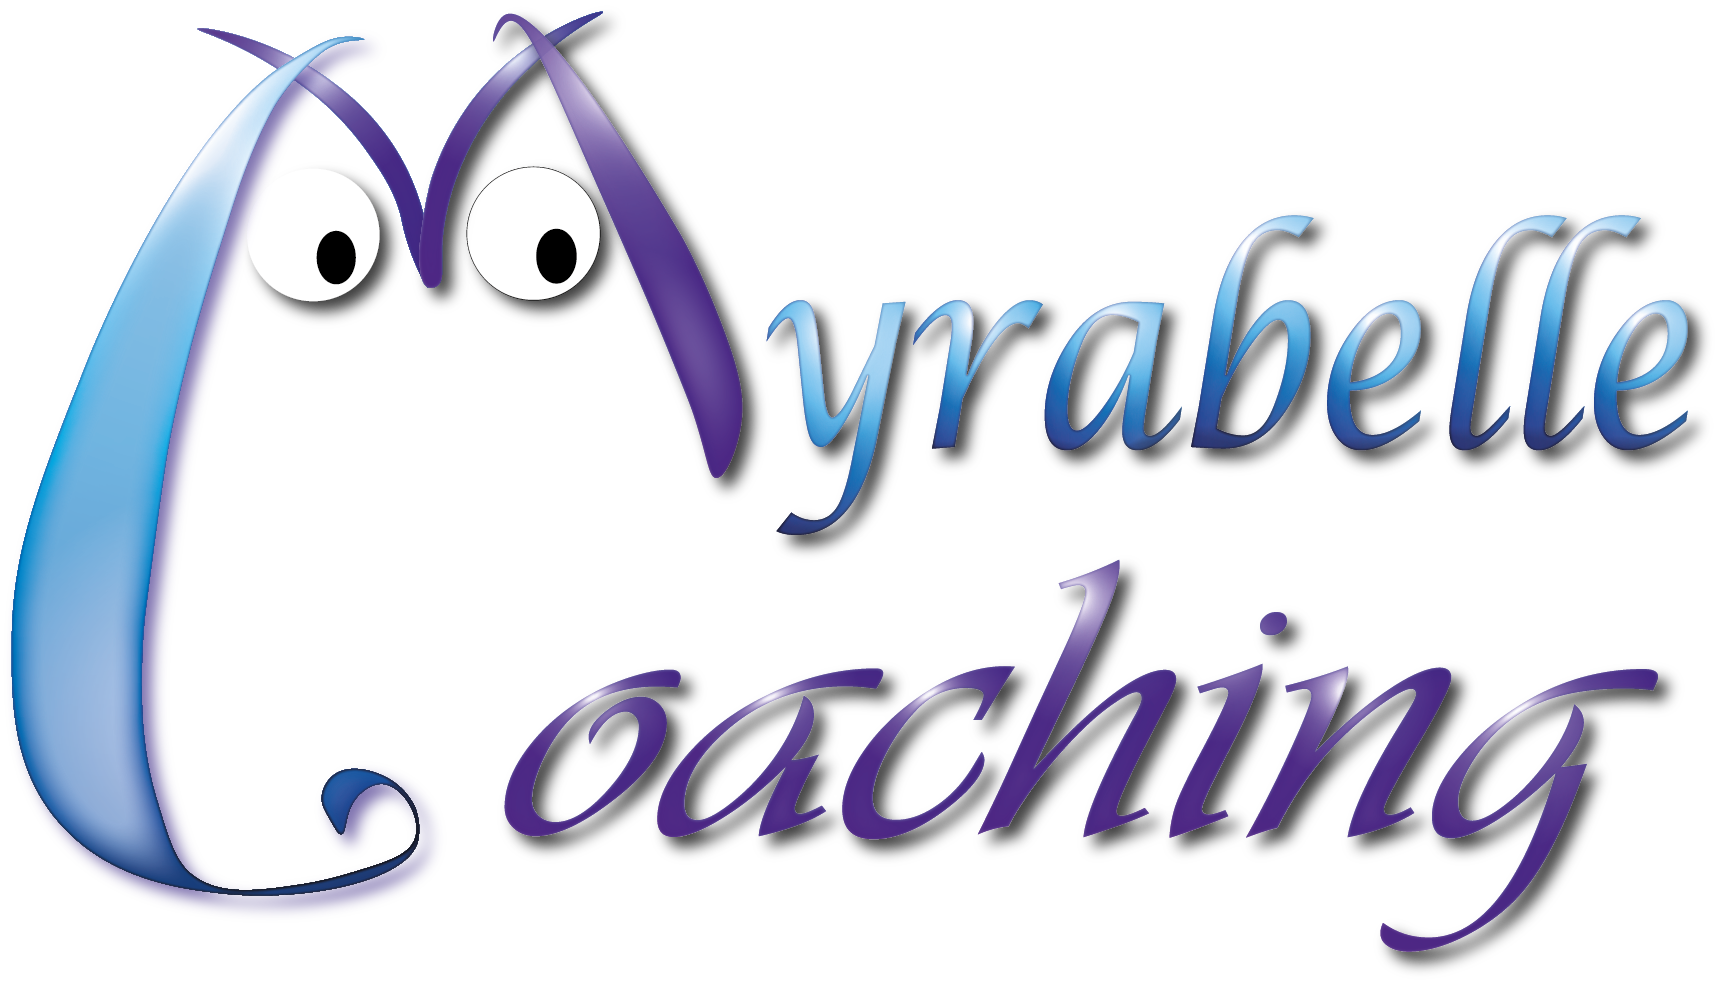 Coaching Myrabelle